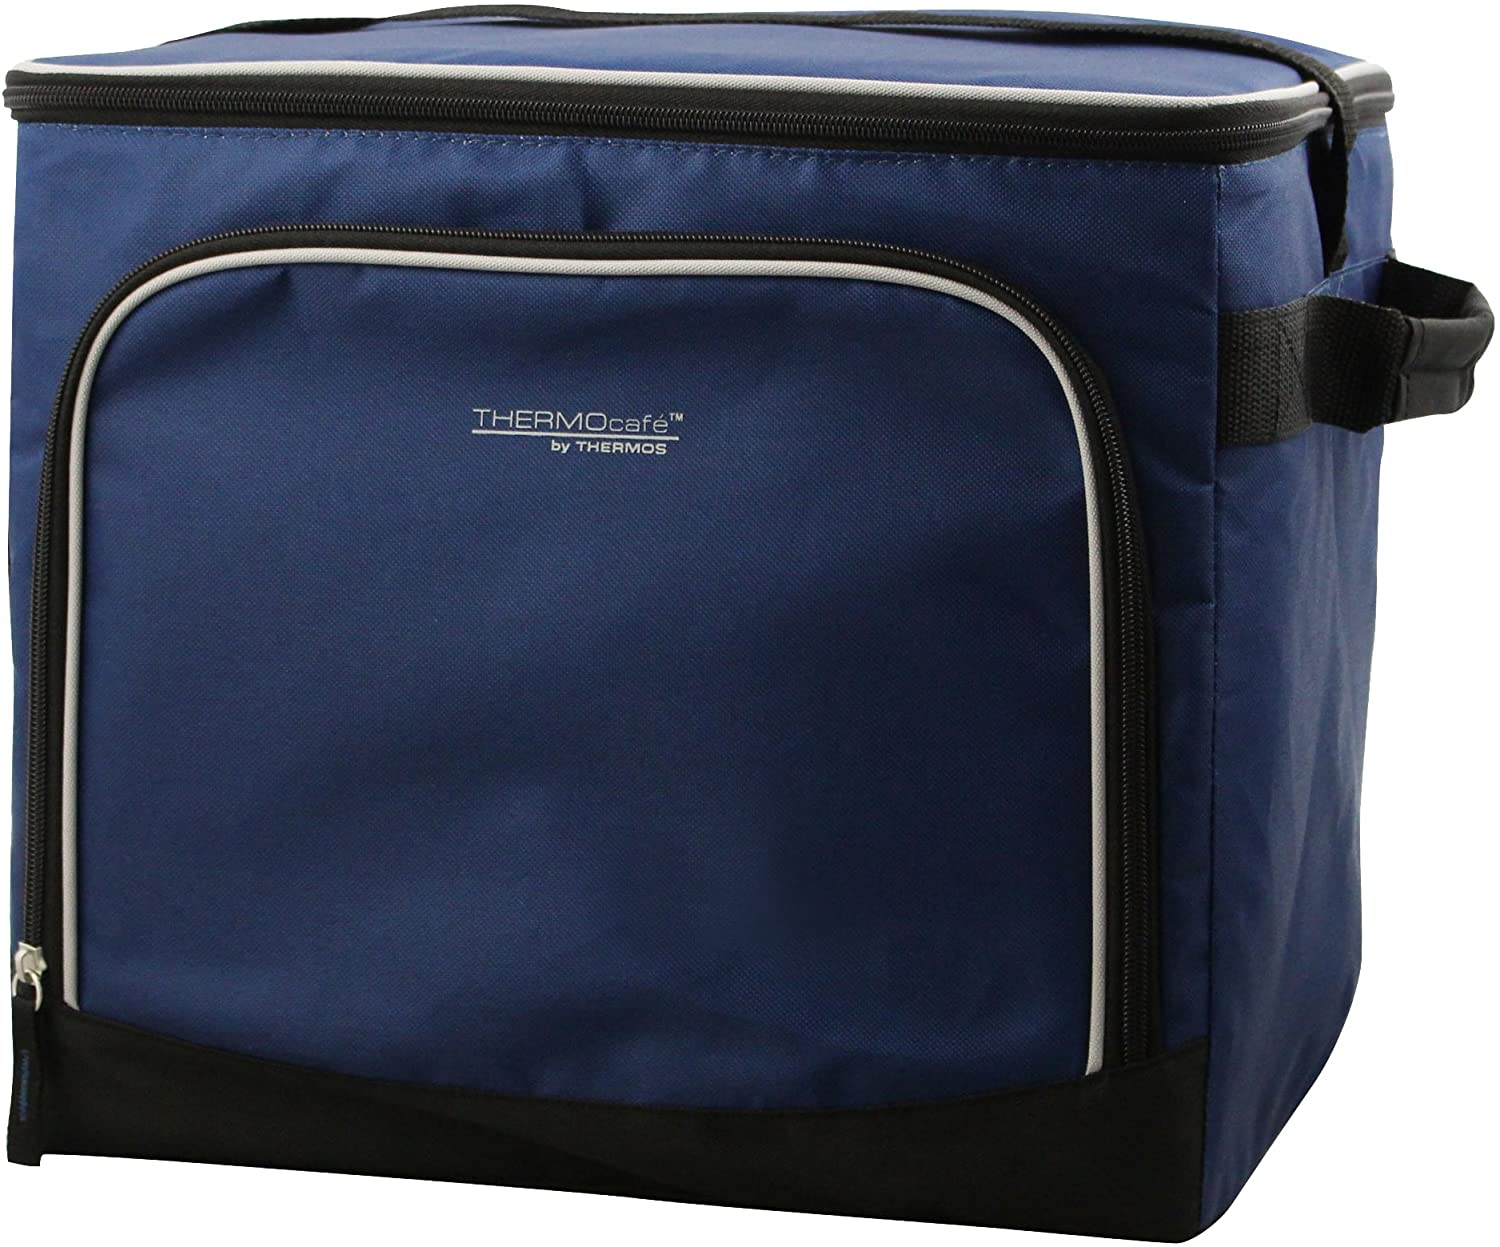 ThermoCafé by Thermos® Medium Cool Bag 6.5L Navy